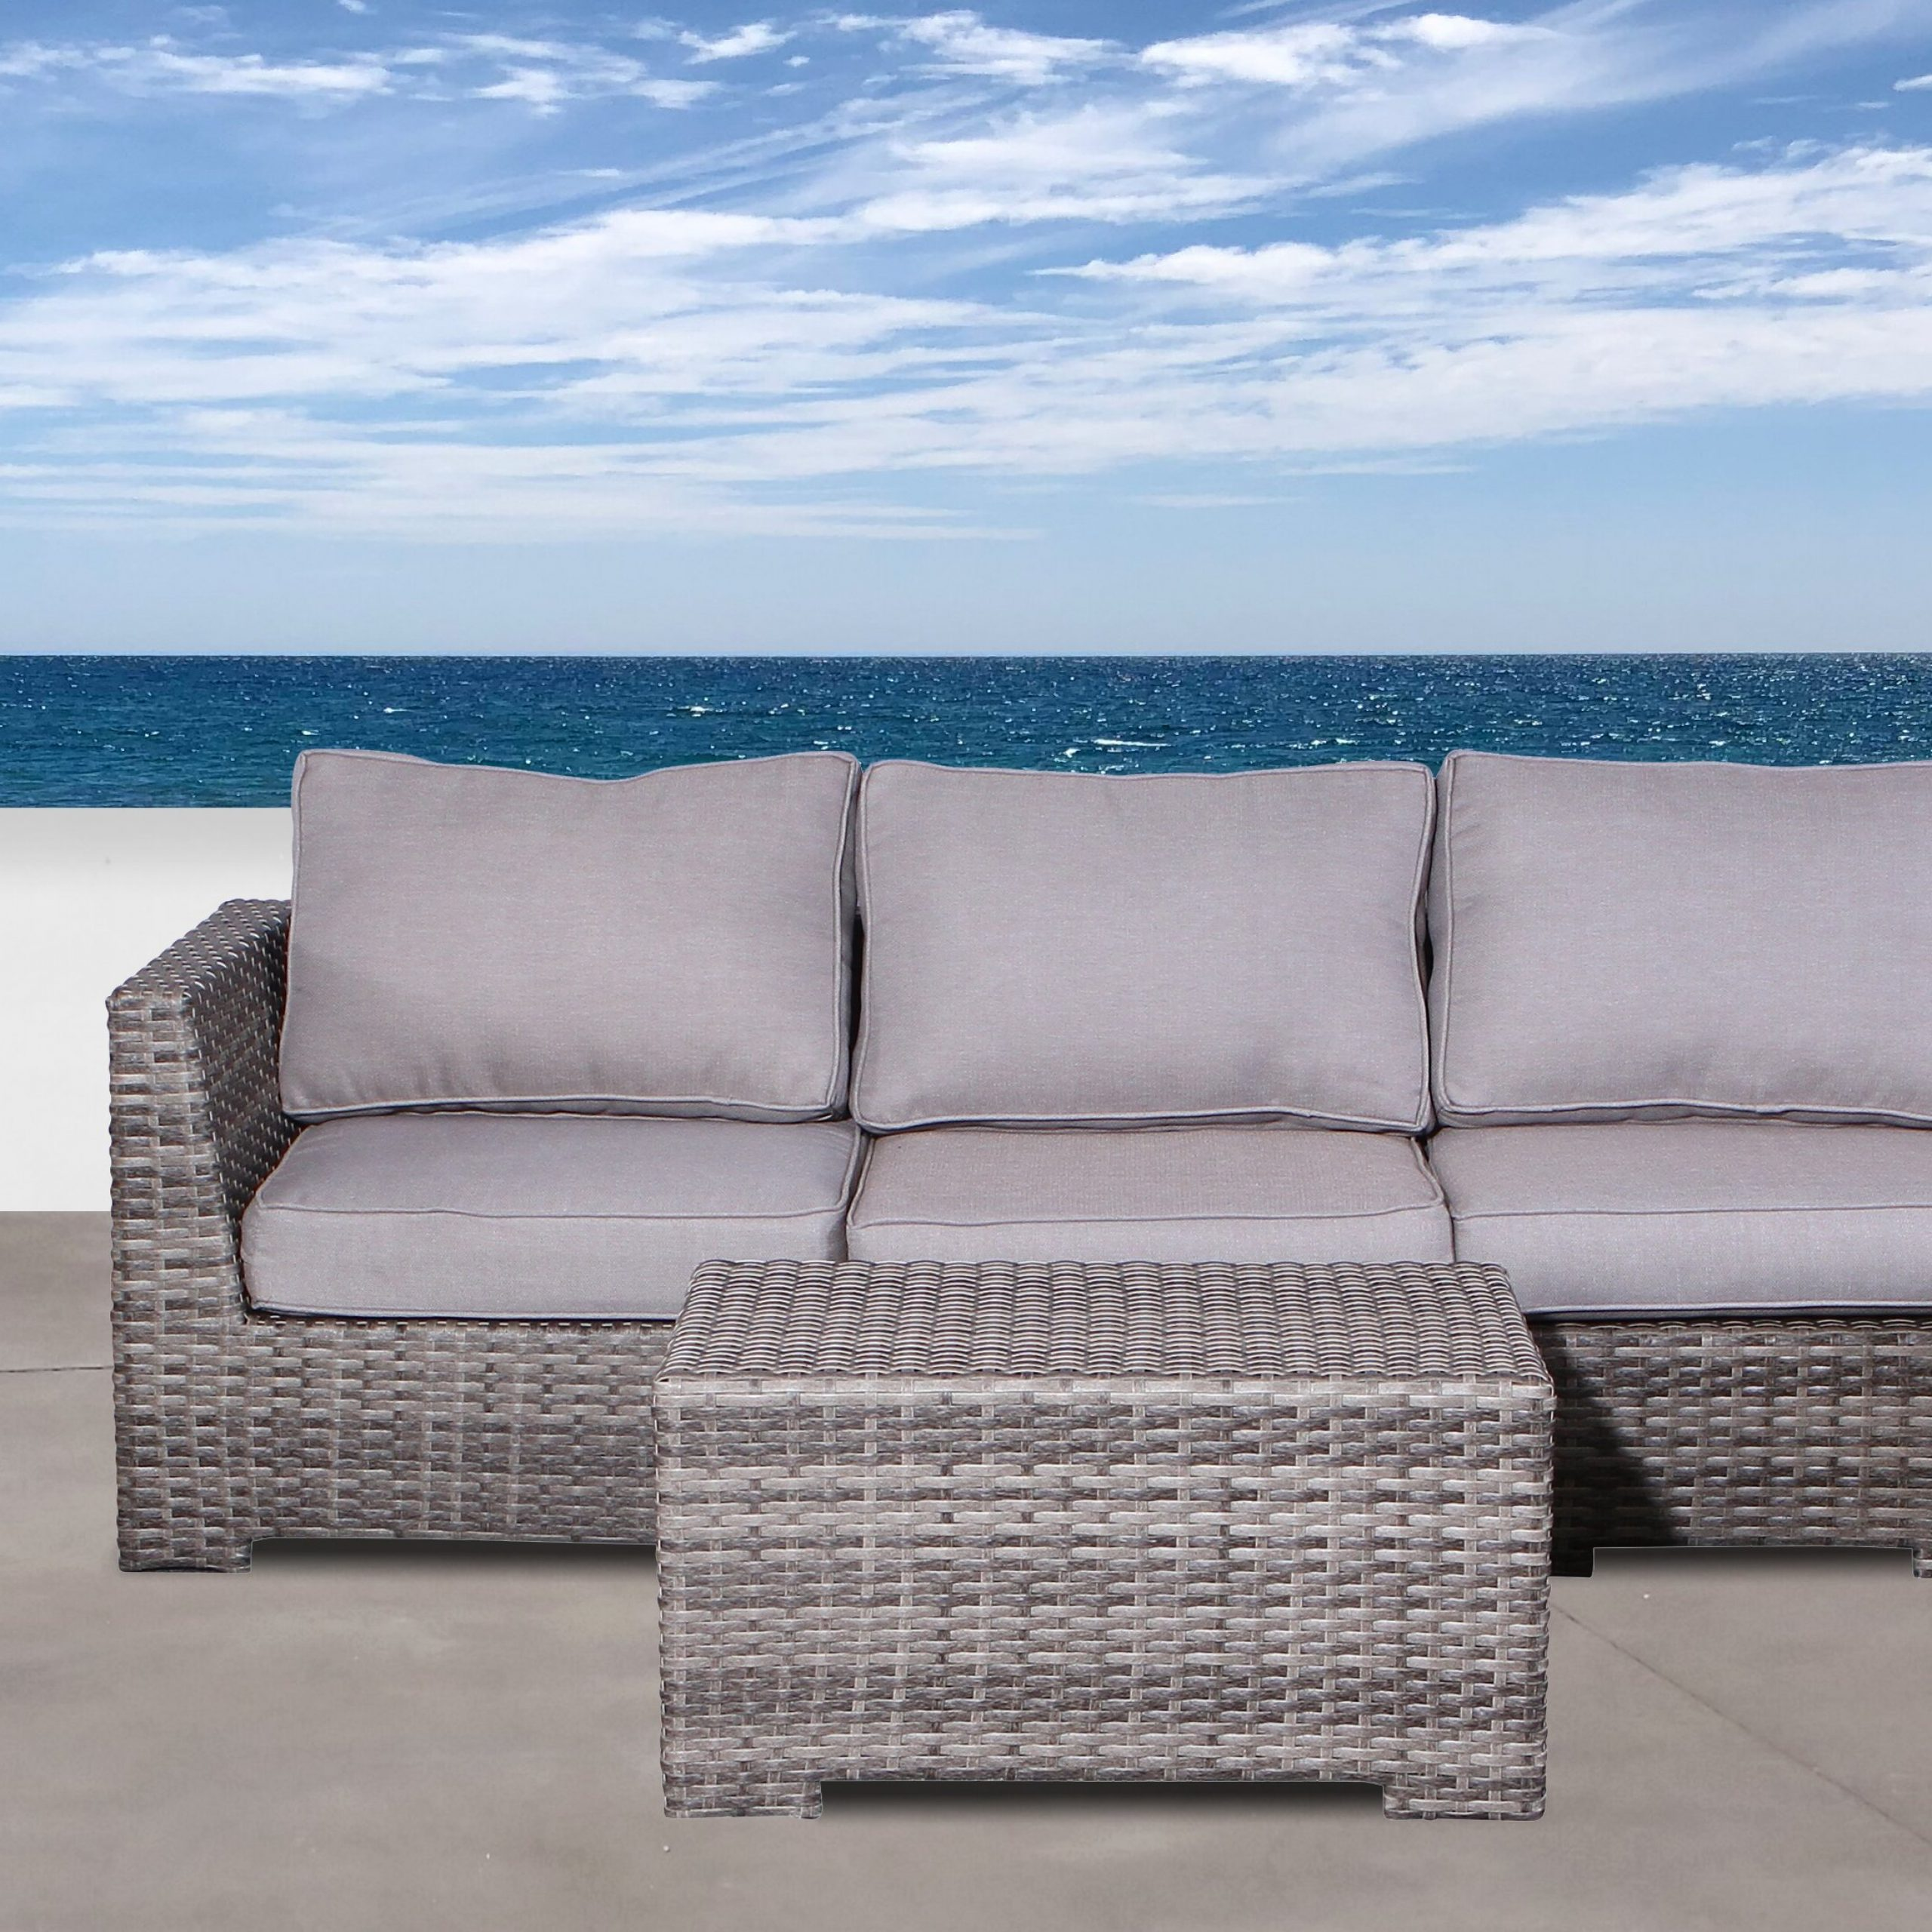 Letona 4 Piece Sectional Set With Cushions With Regard To Widely Used Letona Patio Sectionals With Cushions (Gallery 3 of 25)